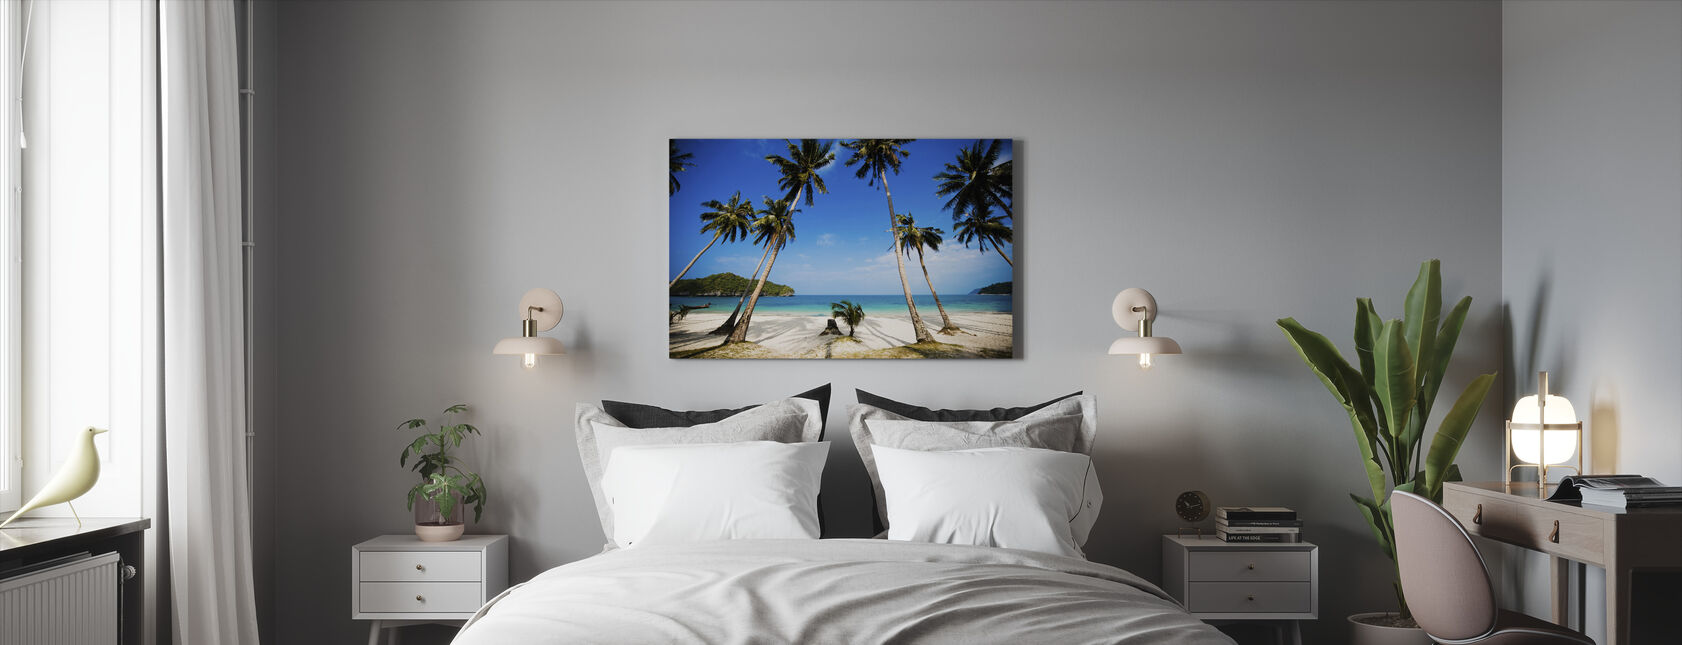 Coconut Palms, Thailand - Canvas print - Bedroom